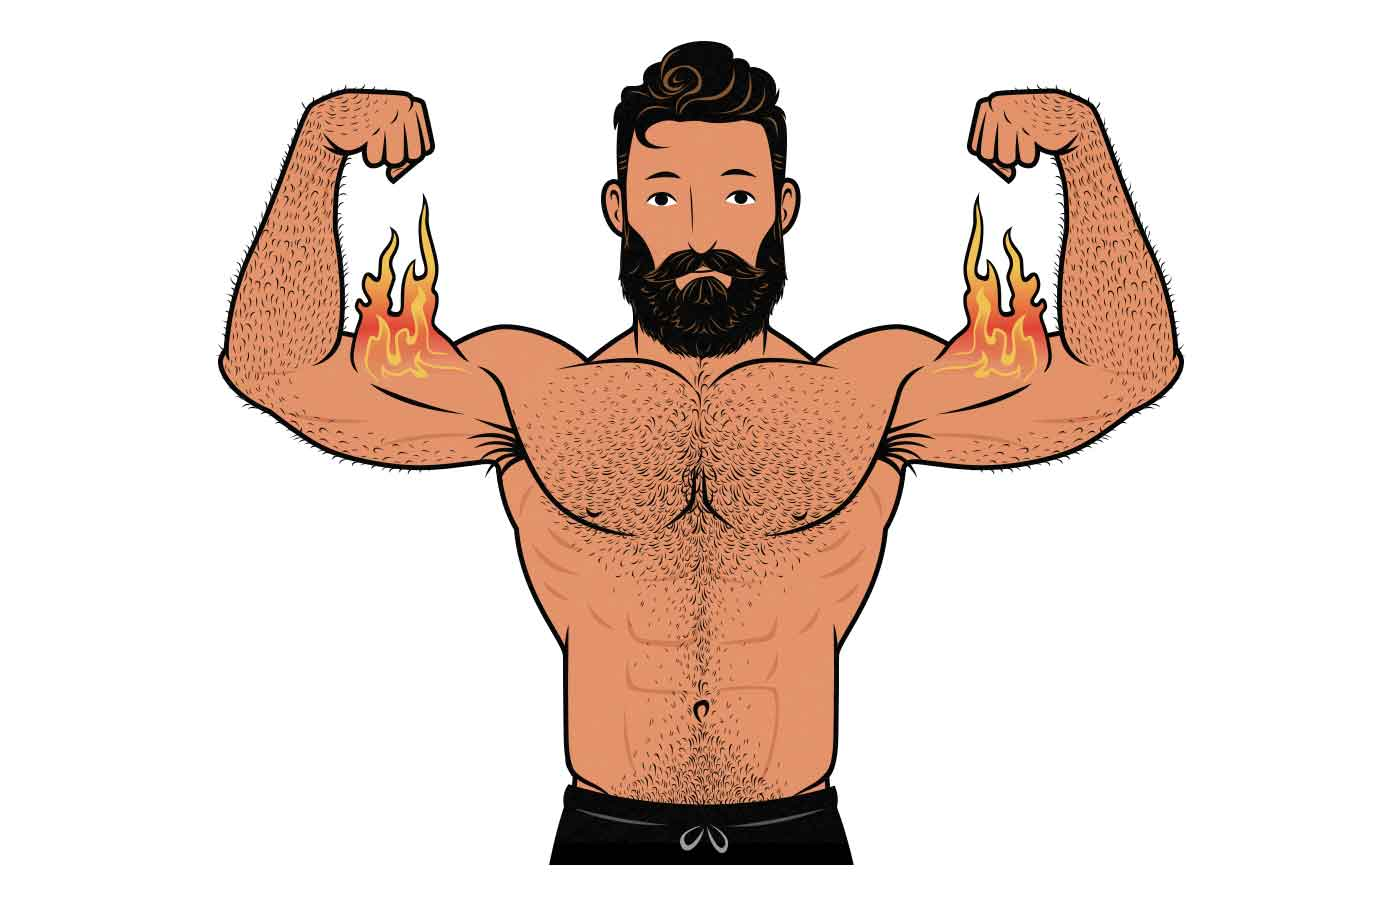 Illustration of a man with burning biceps flexing.